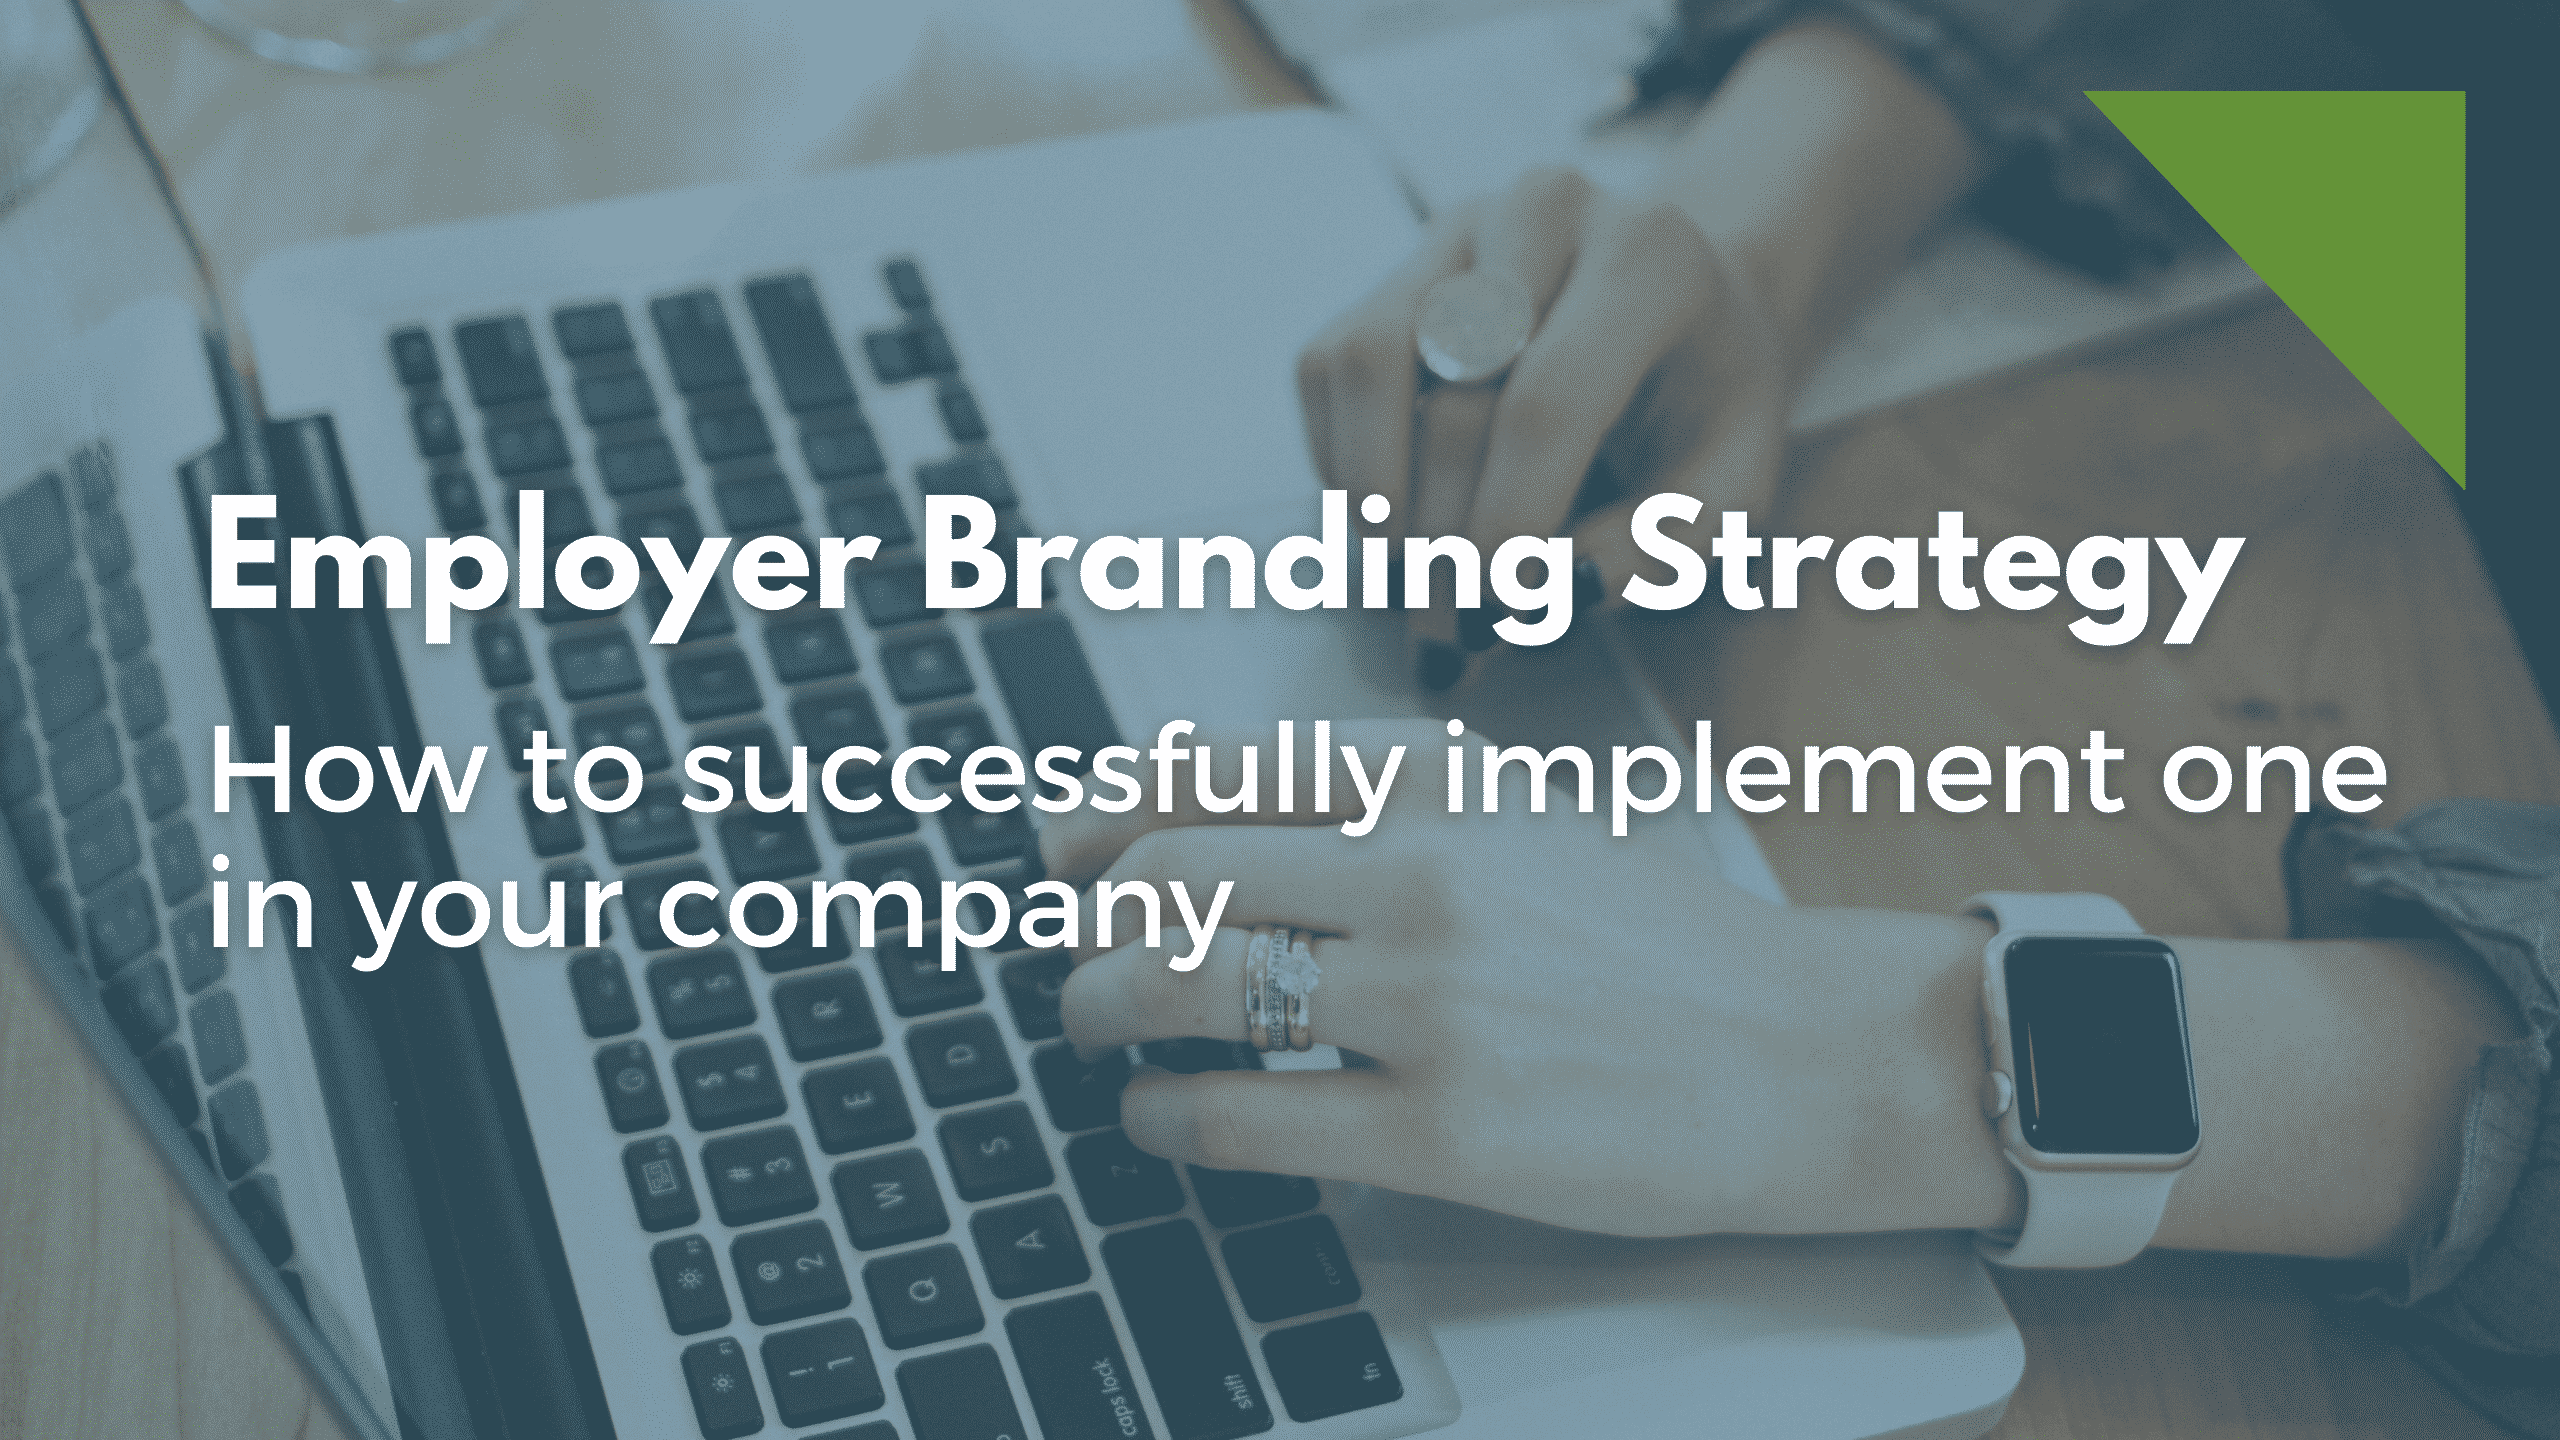 Employer Branding Strategy in your company